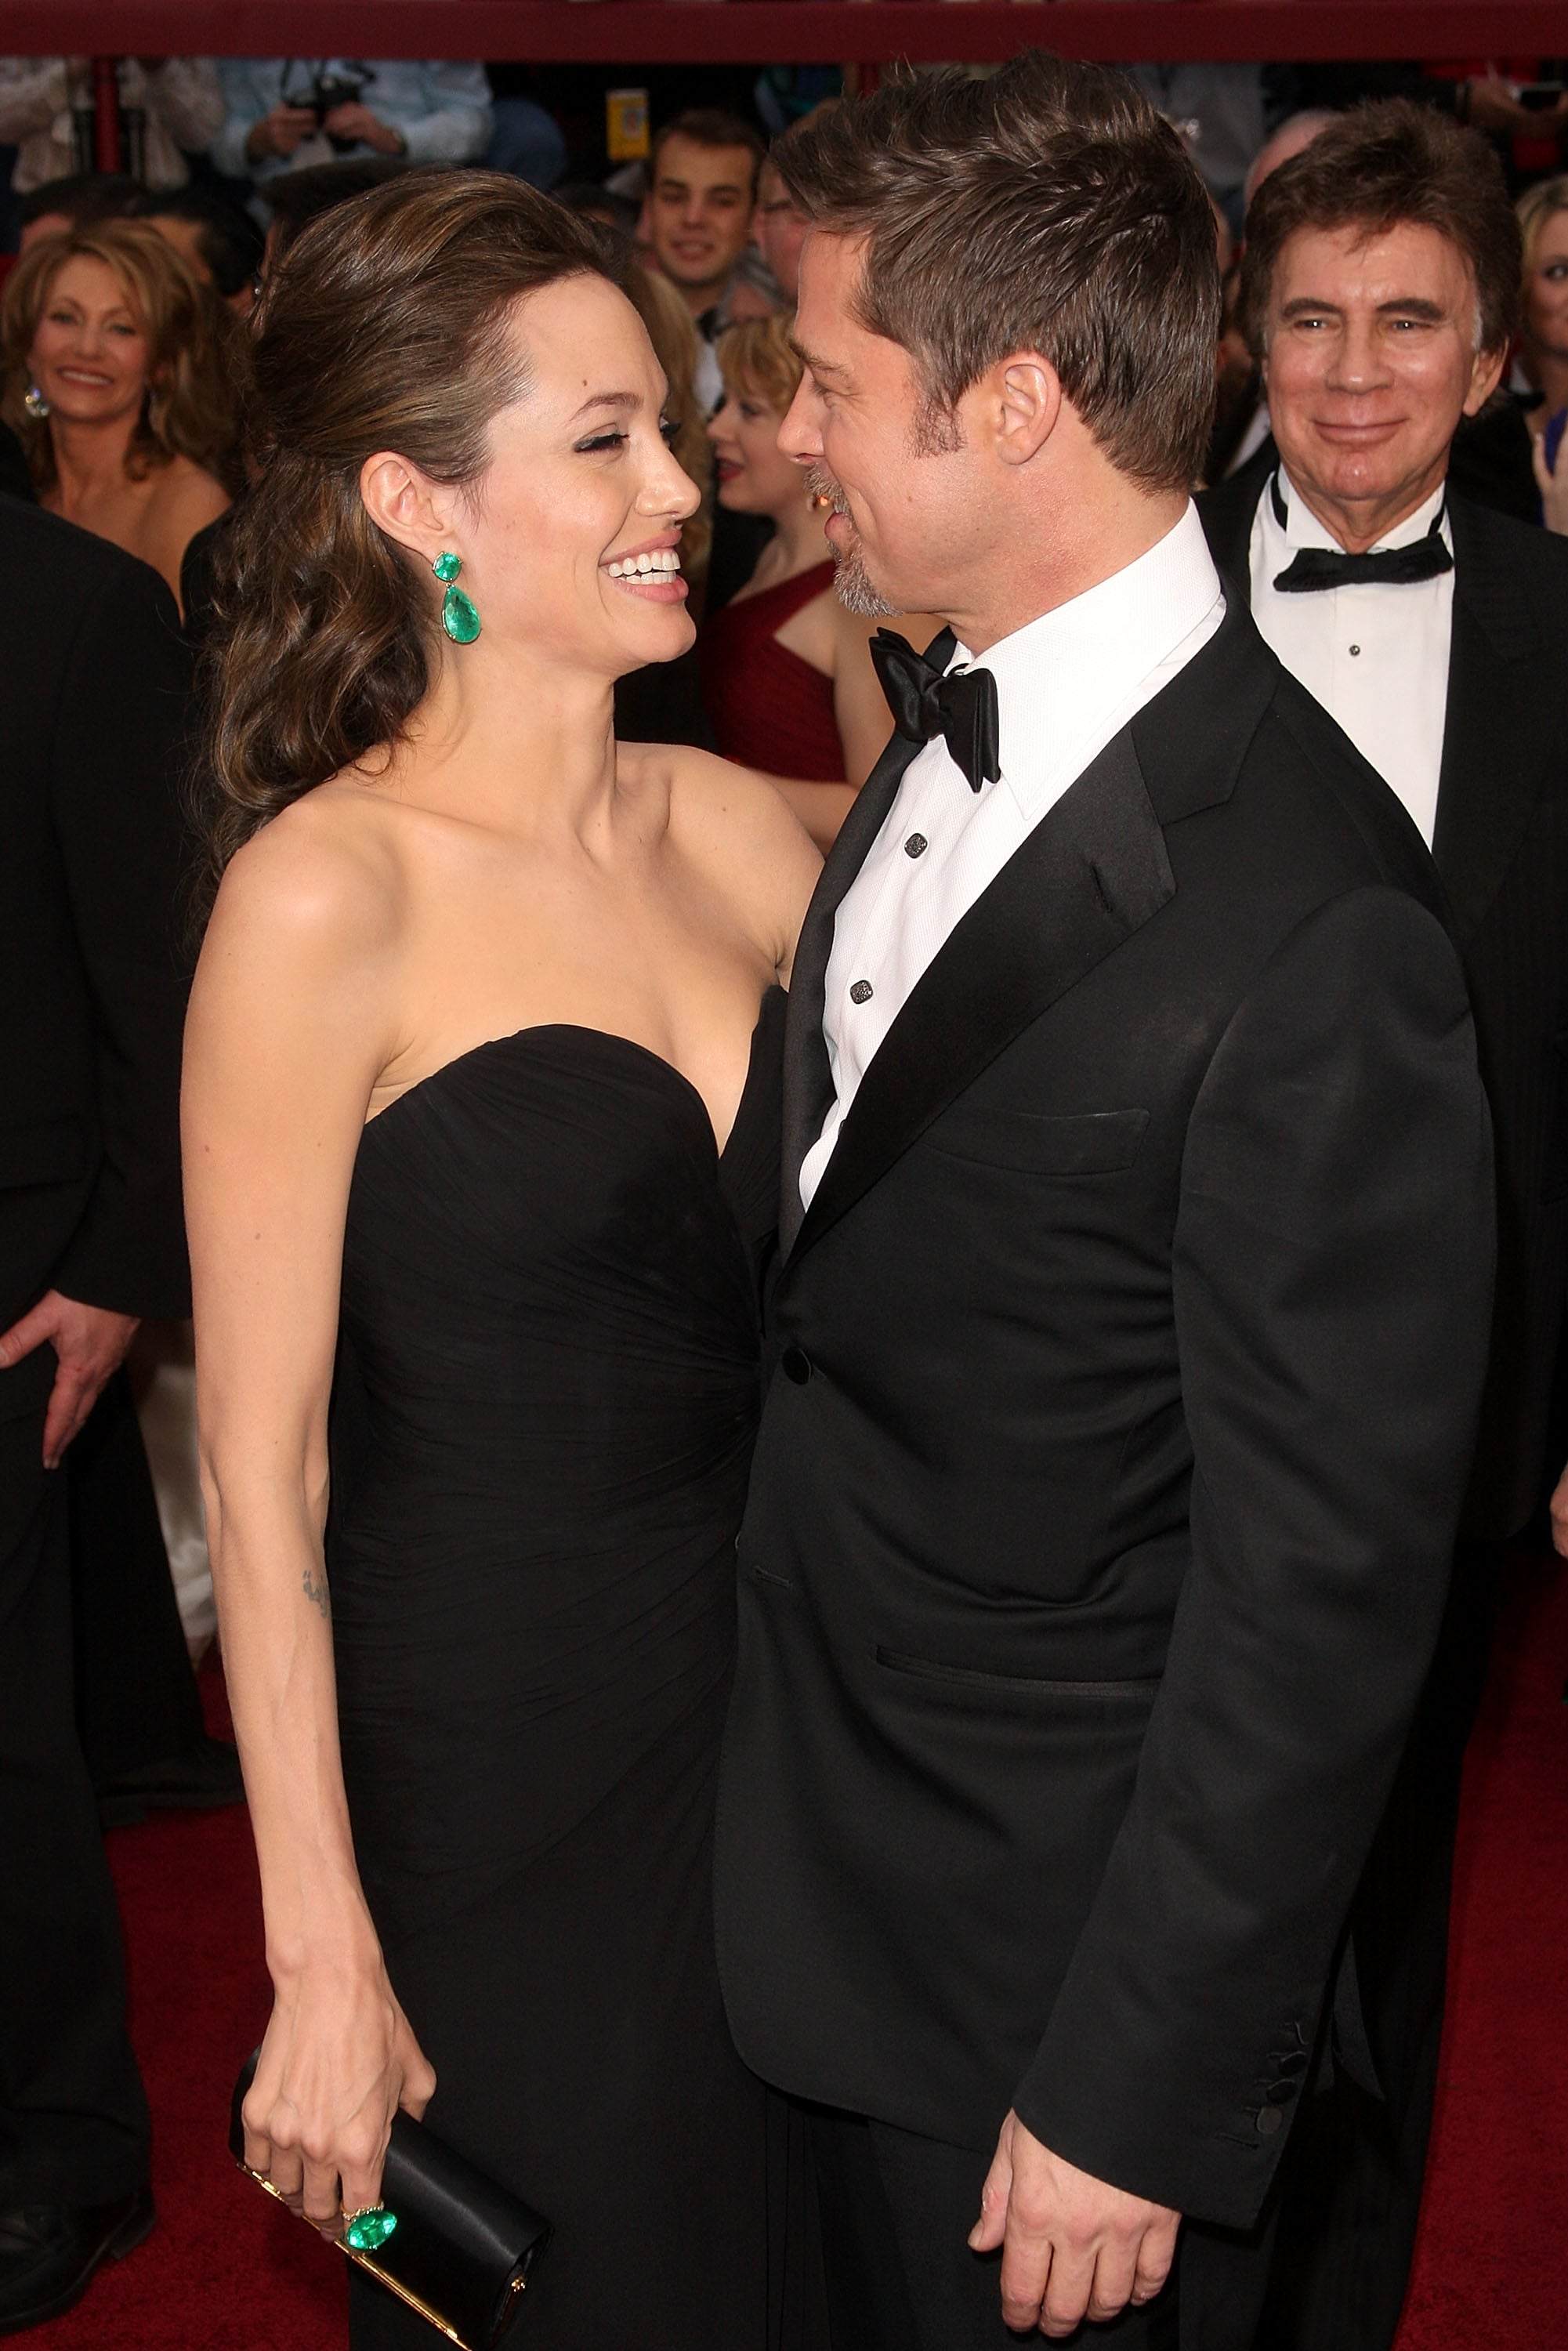 Angelina Jolie flashed a smile in Brad Pitt's direction at the 2009 Oscars.